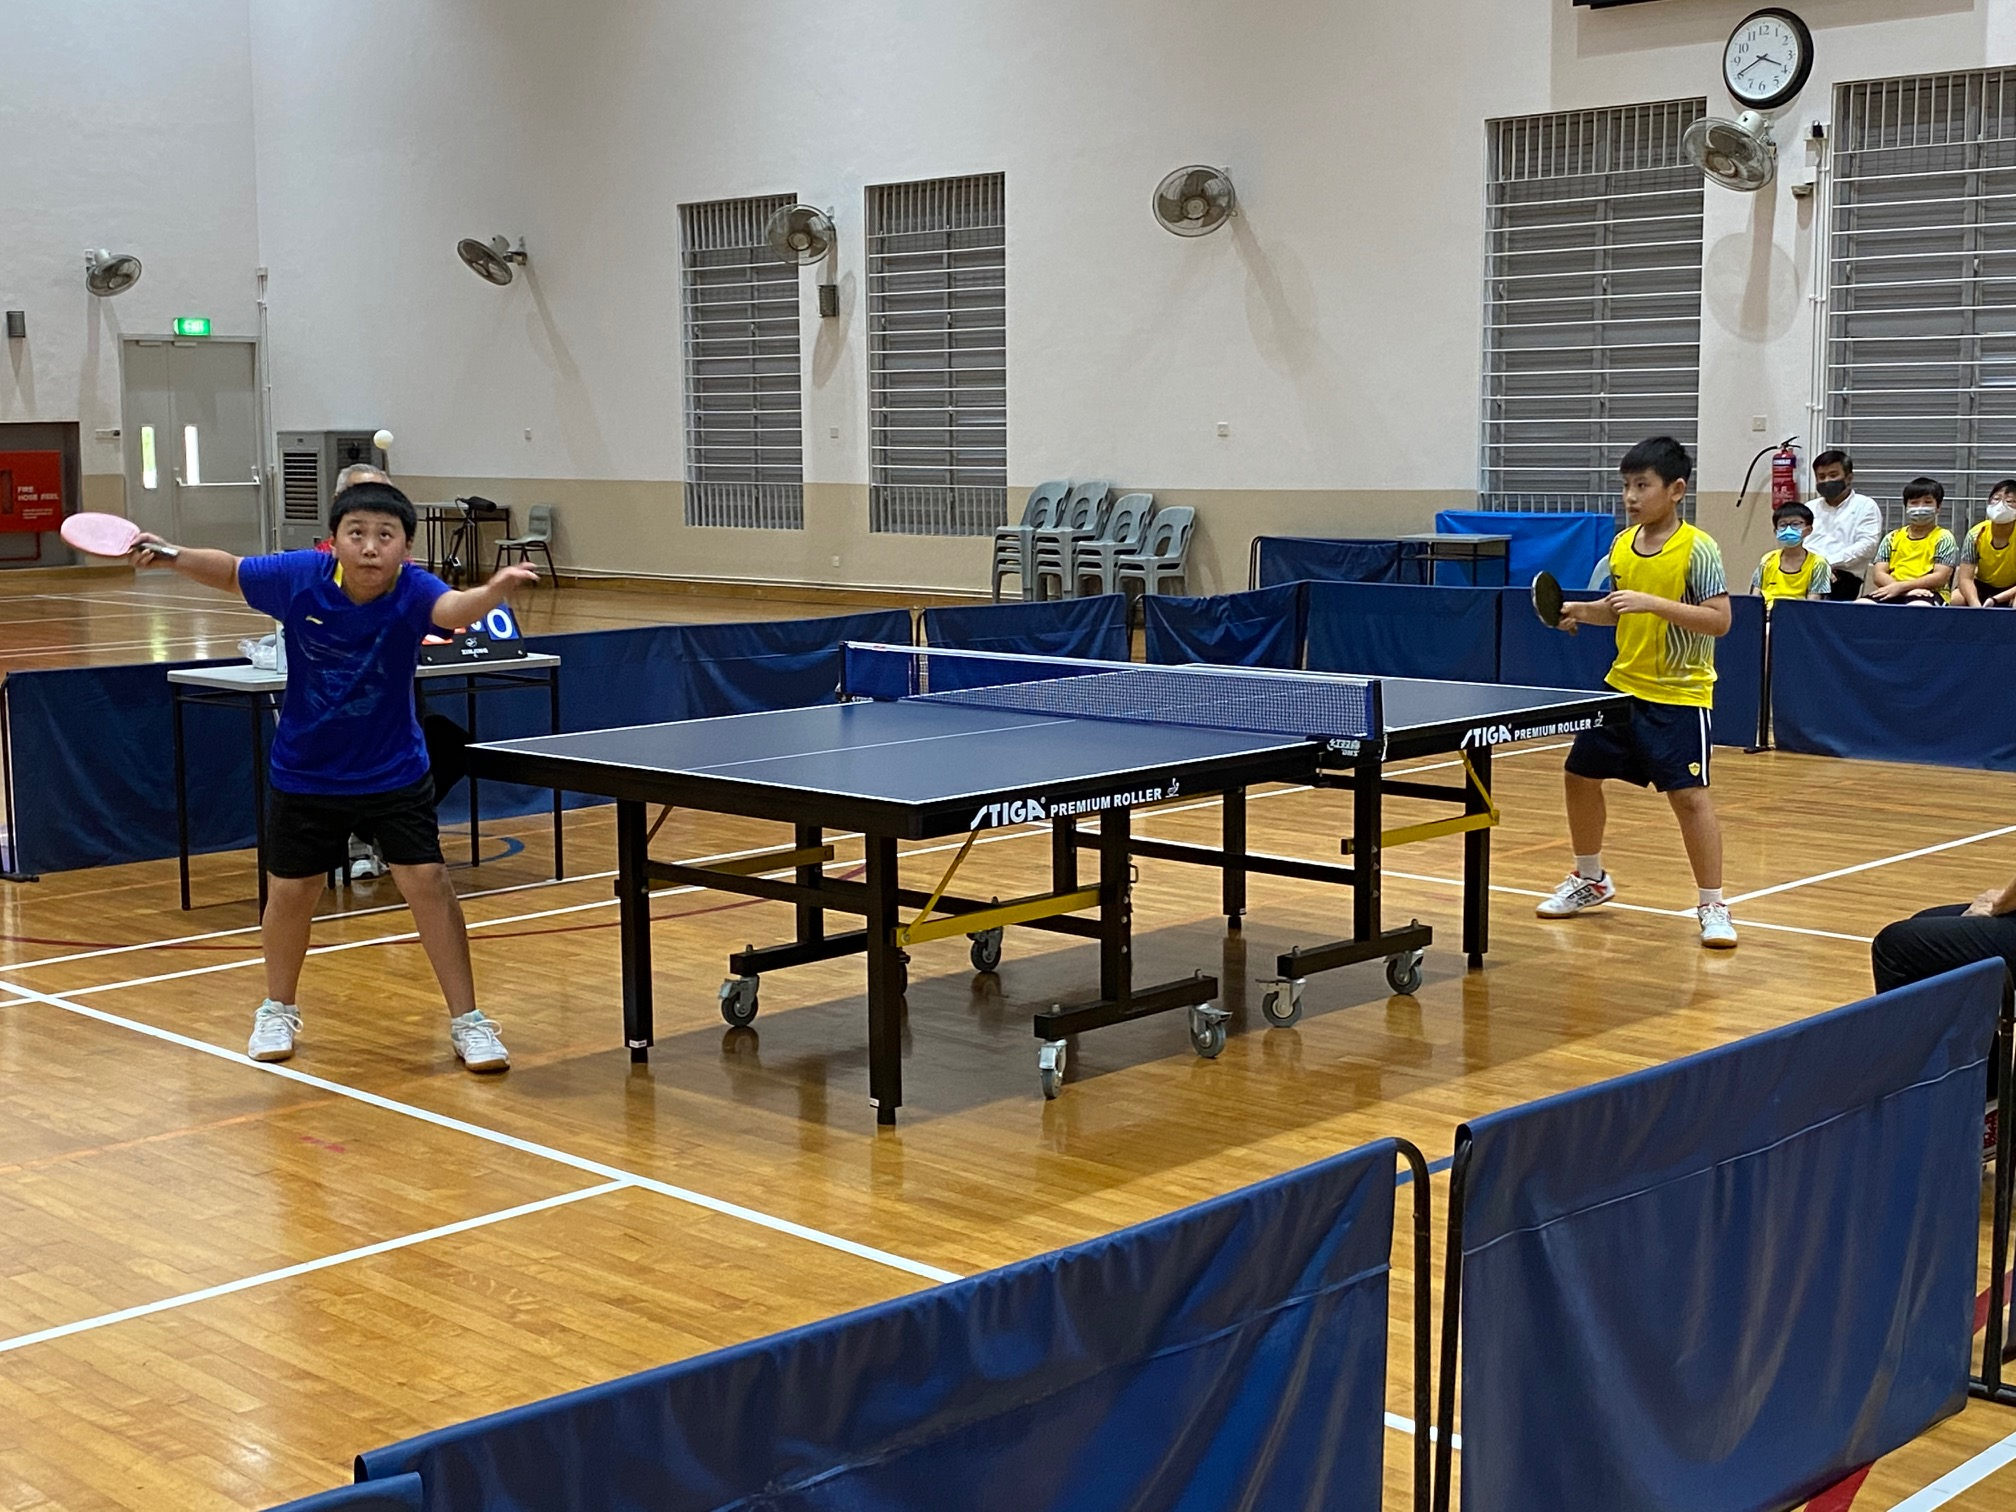 NSG East Zone Snr Div boys table tennis final - first singles